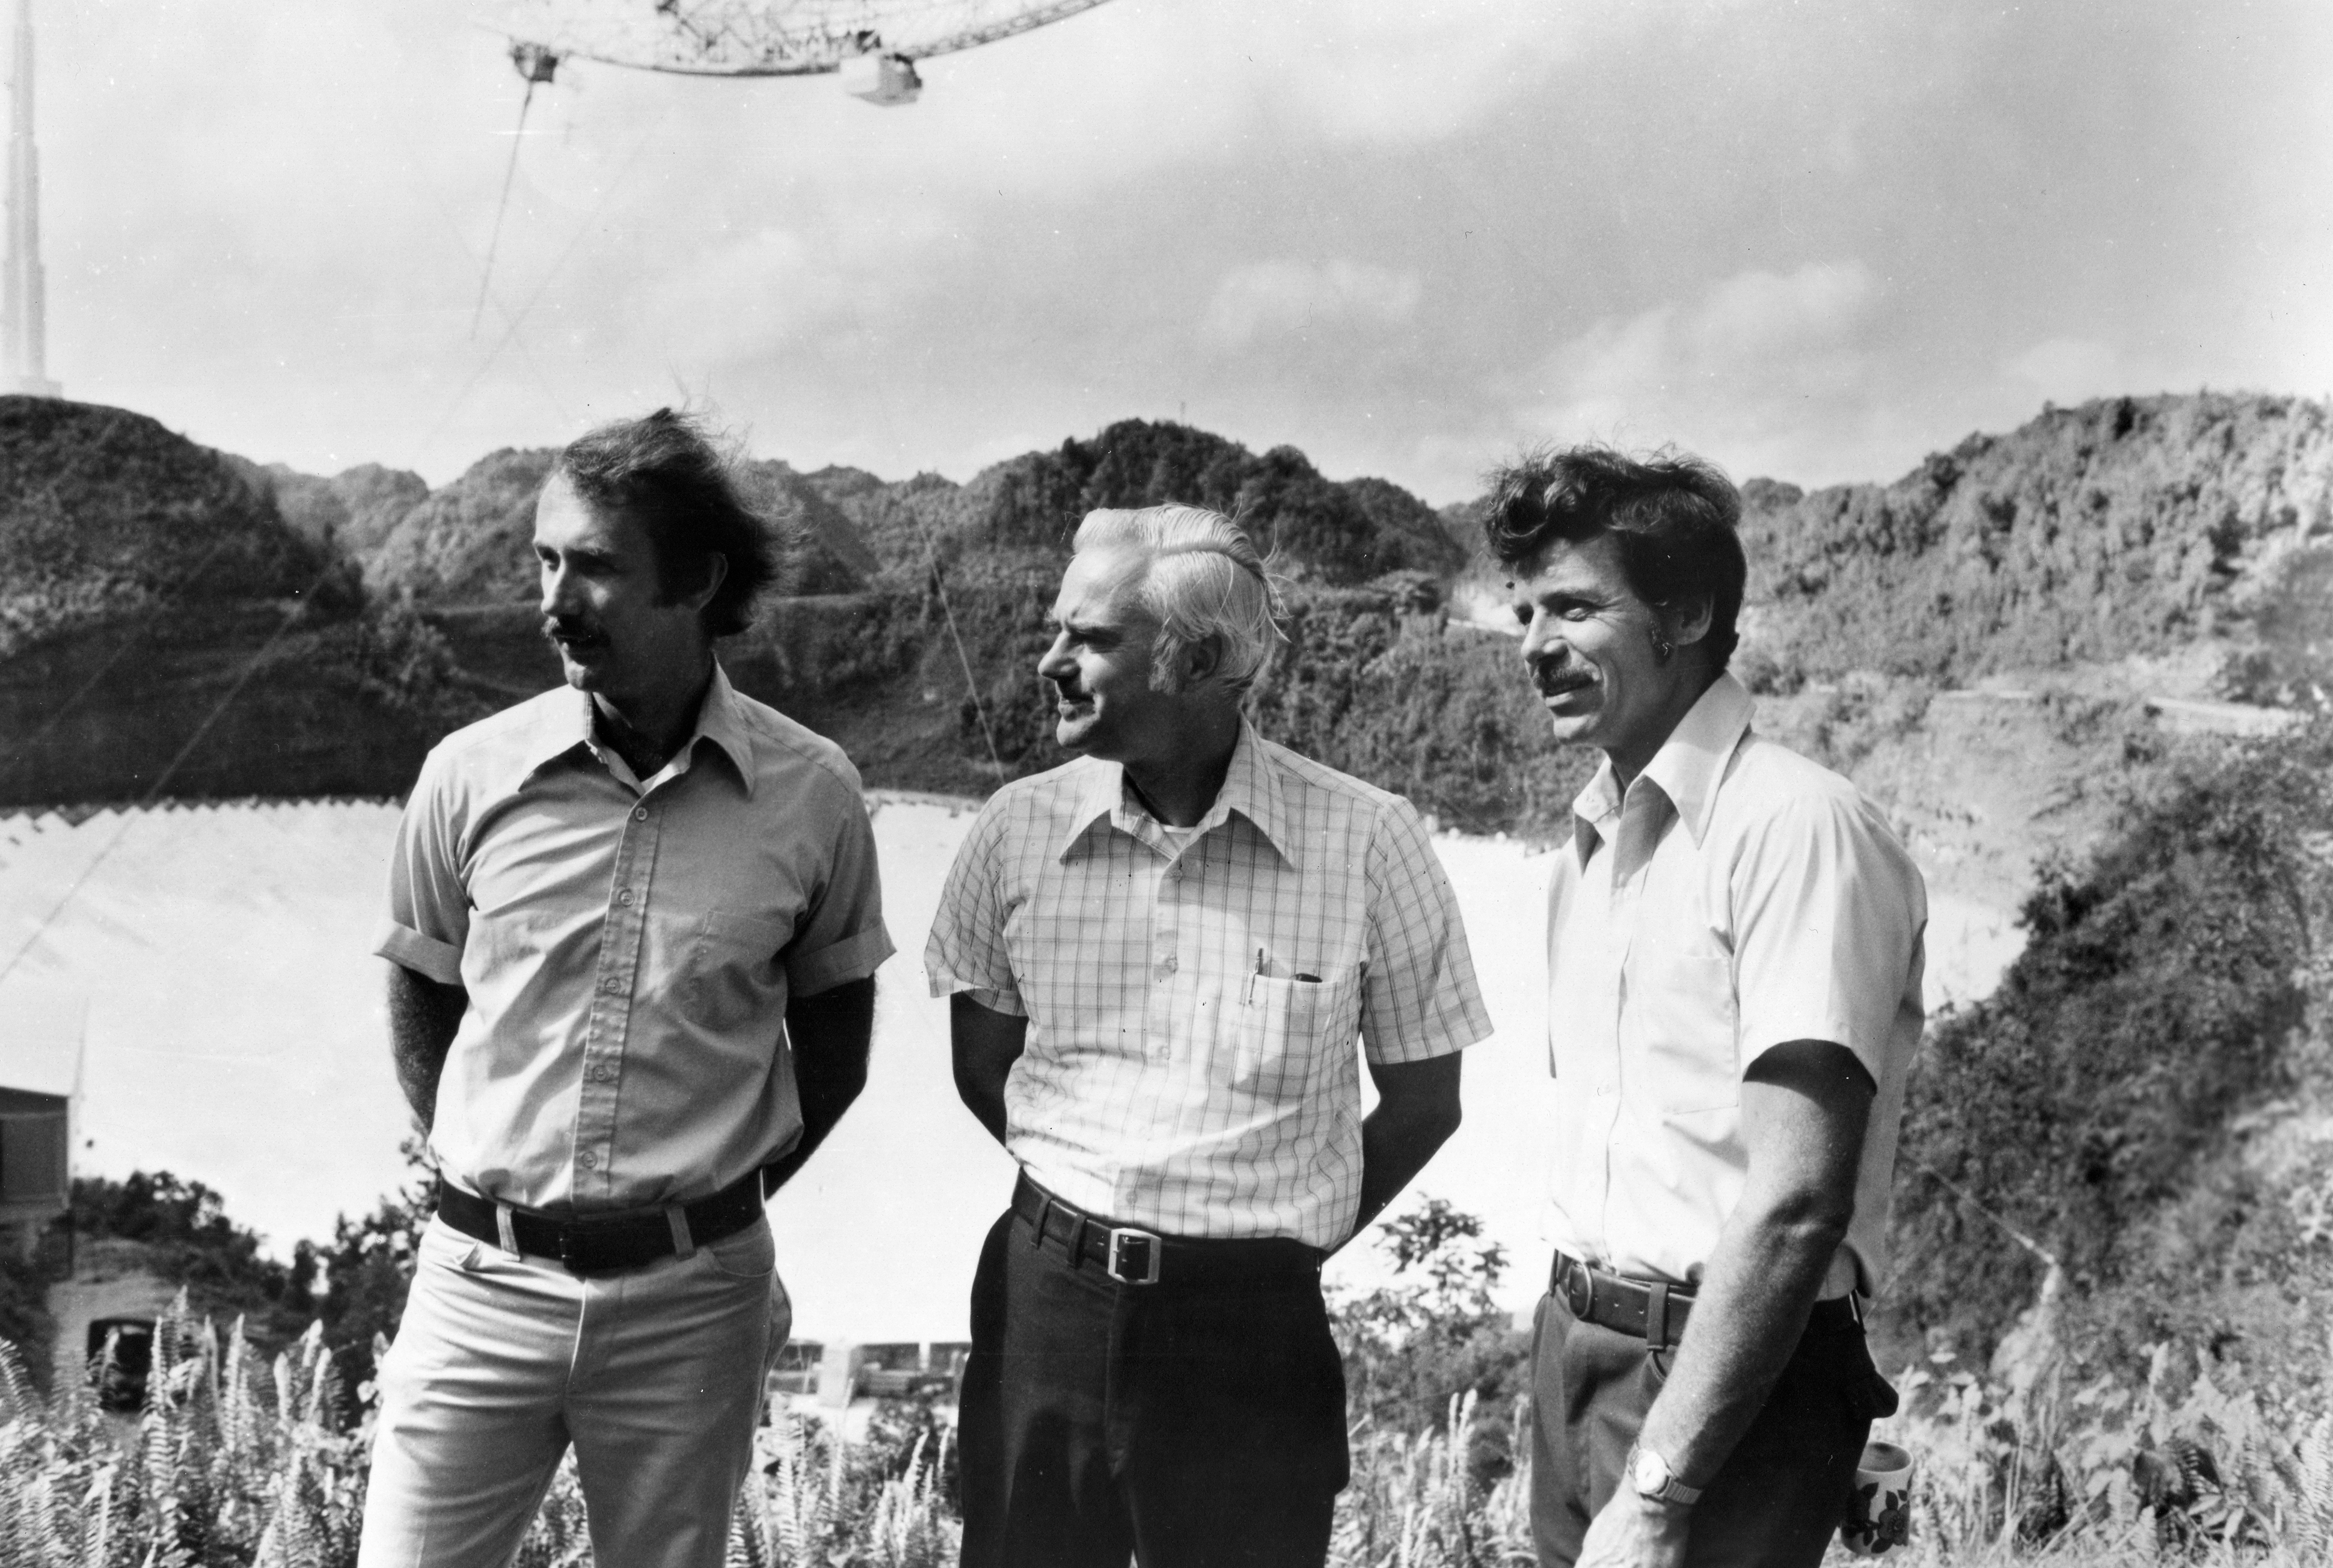 Harold Craft, Frank Drake, and Rolf Dyce stand outdoors.